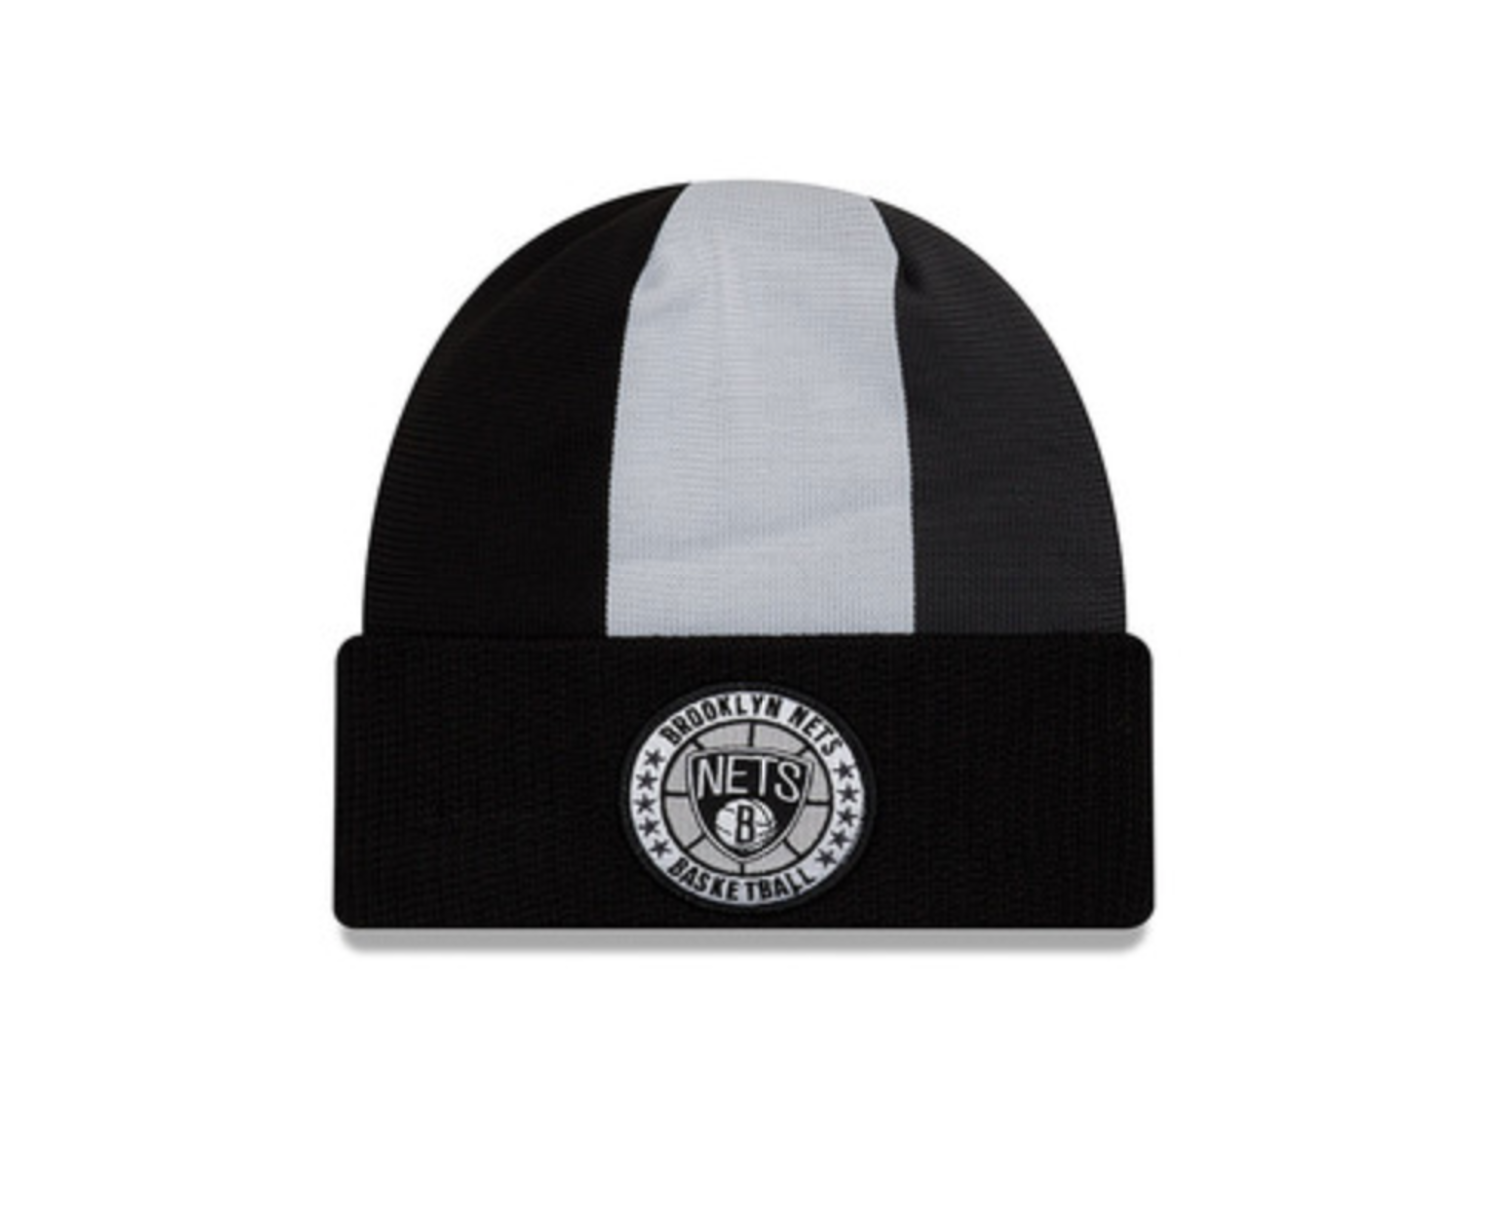 Gorro de Brooklyn Nets para la temporada 2018/19